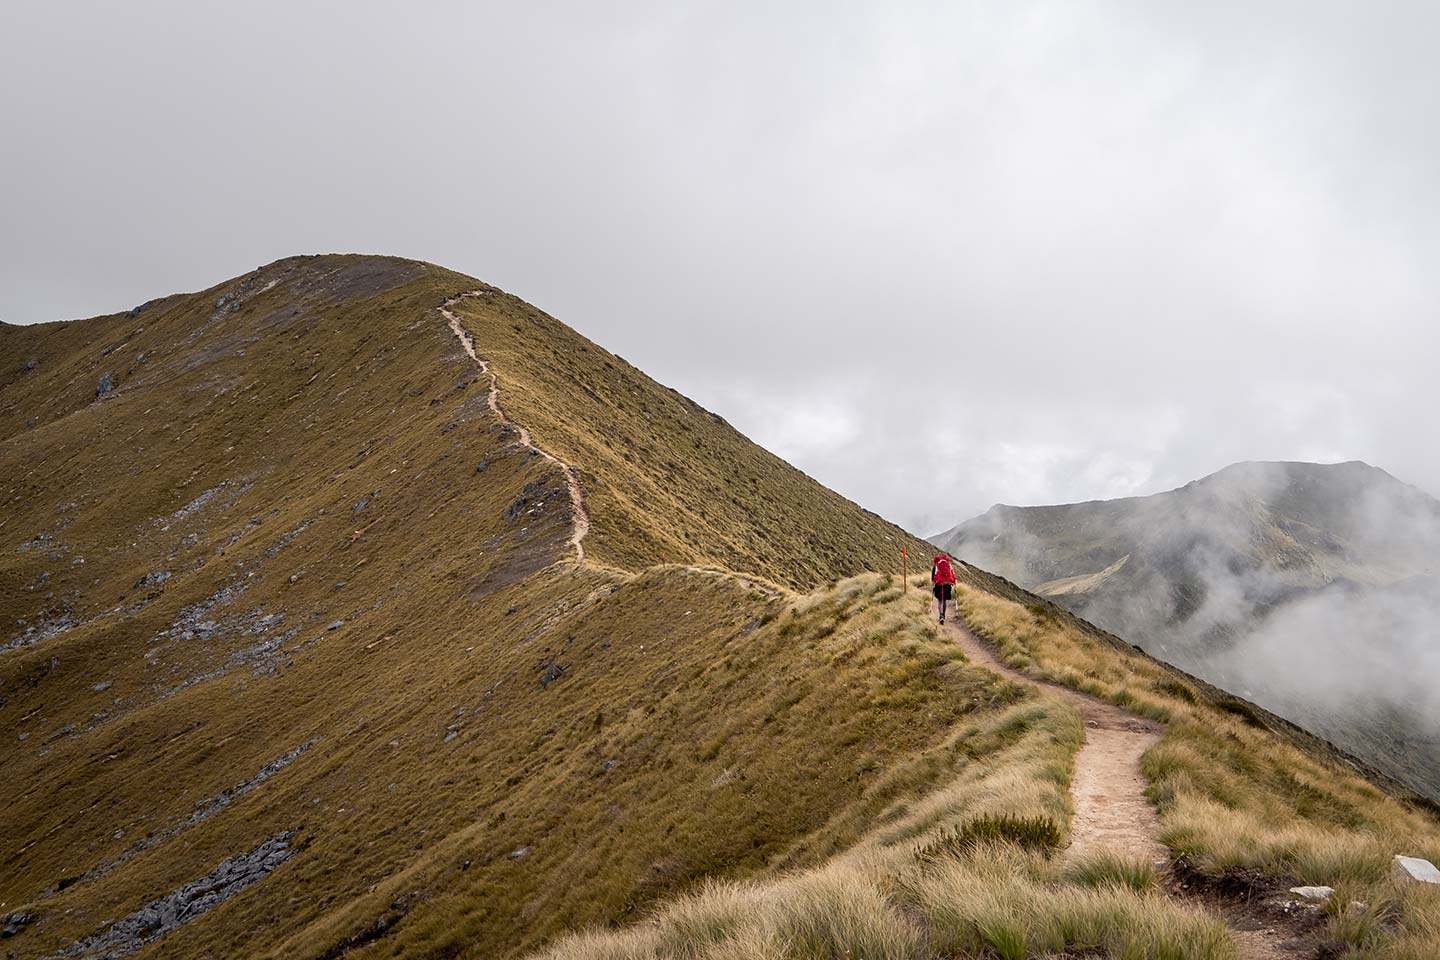 A long ridge line travels up a tussock covered mountain on the Kepler Track in the Fiordland region.